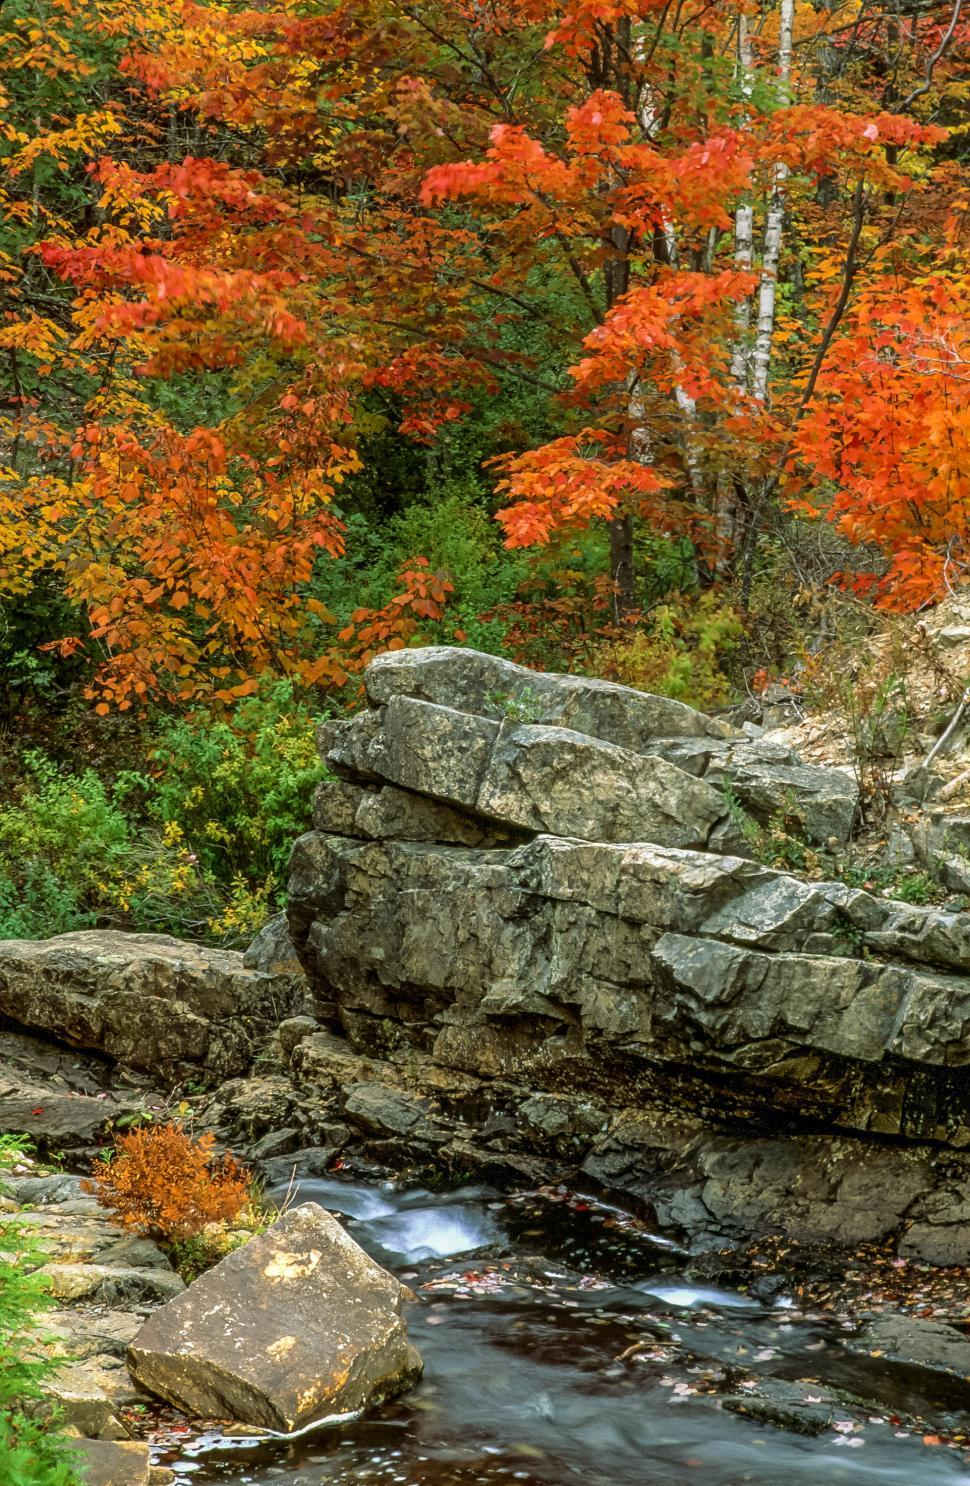 Download Free Stock HD Photo of Fall foliage colors and stream Online